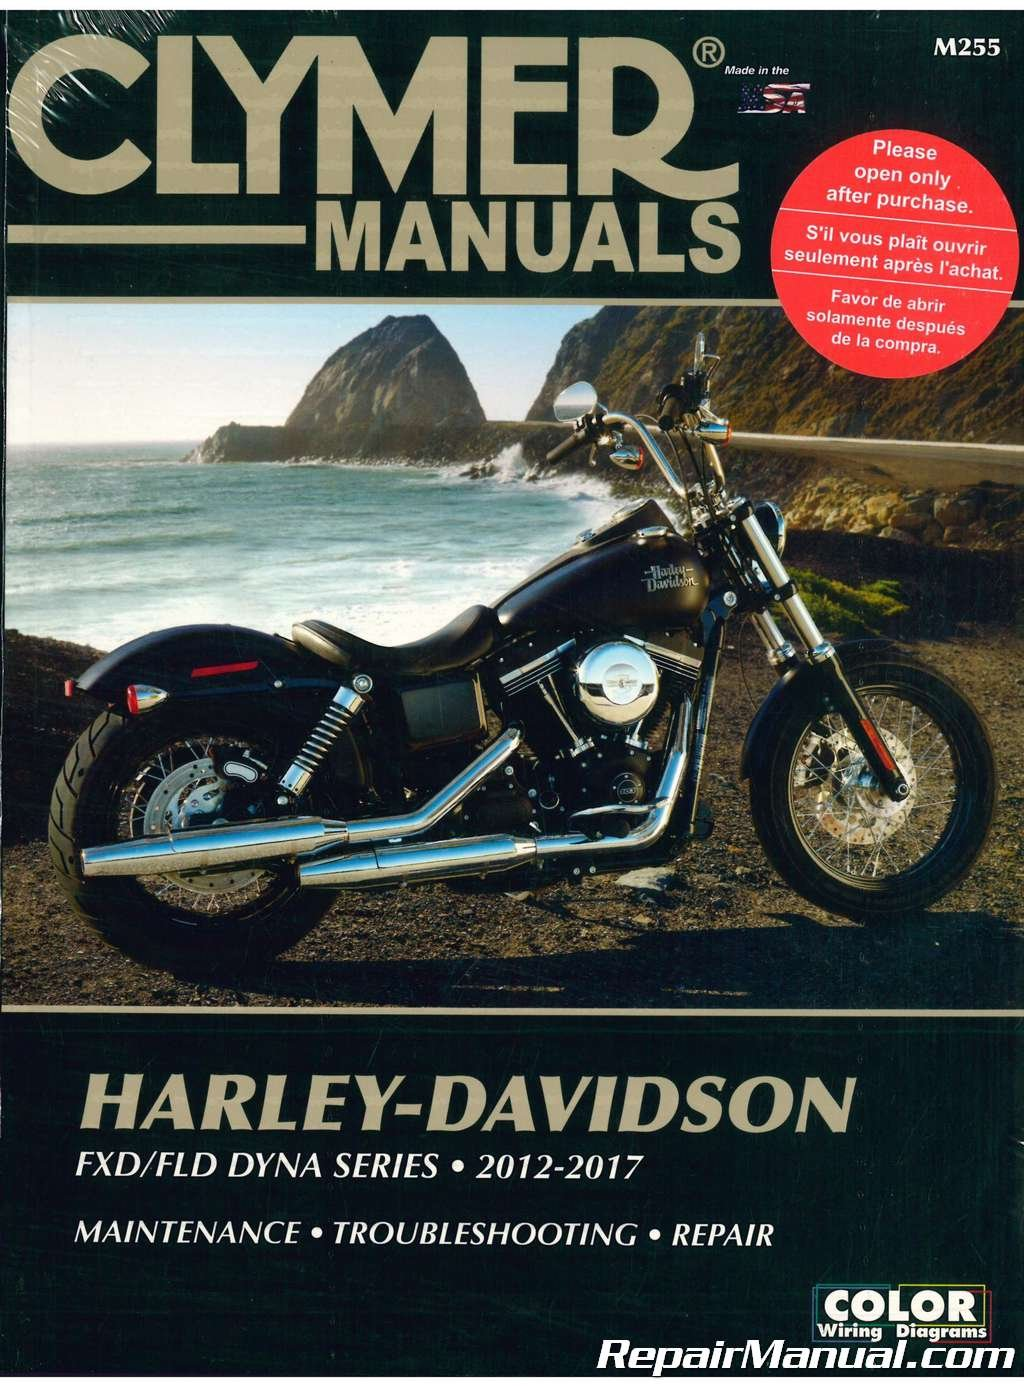 M255 Clymer Harley Davidson Fxd Fld Dyna Series 2012 2017 Motorcycle 2014 Fxdl Wiring Diagram Fuel Repair Manual Manufacturer Books